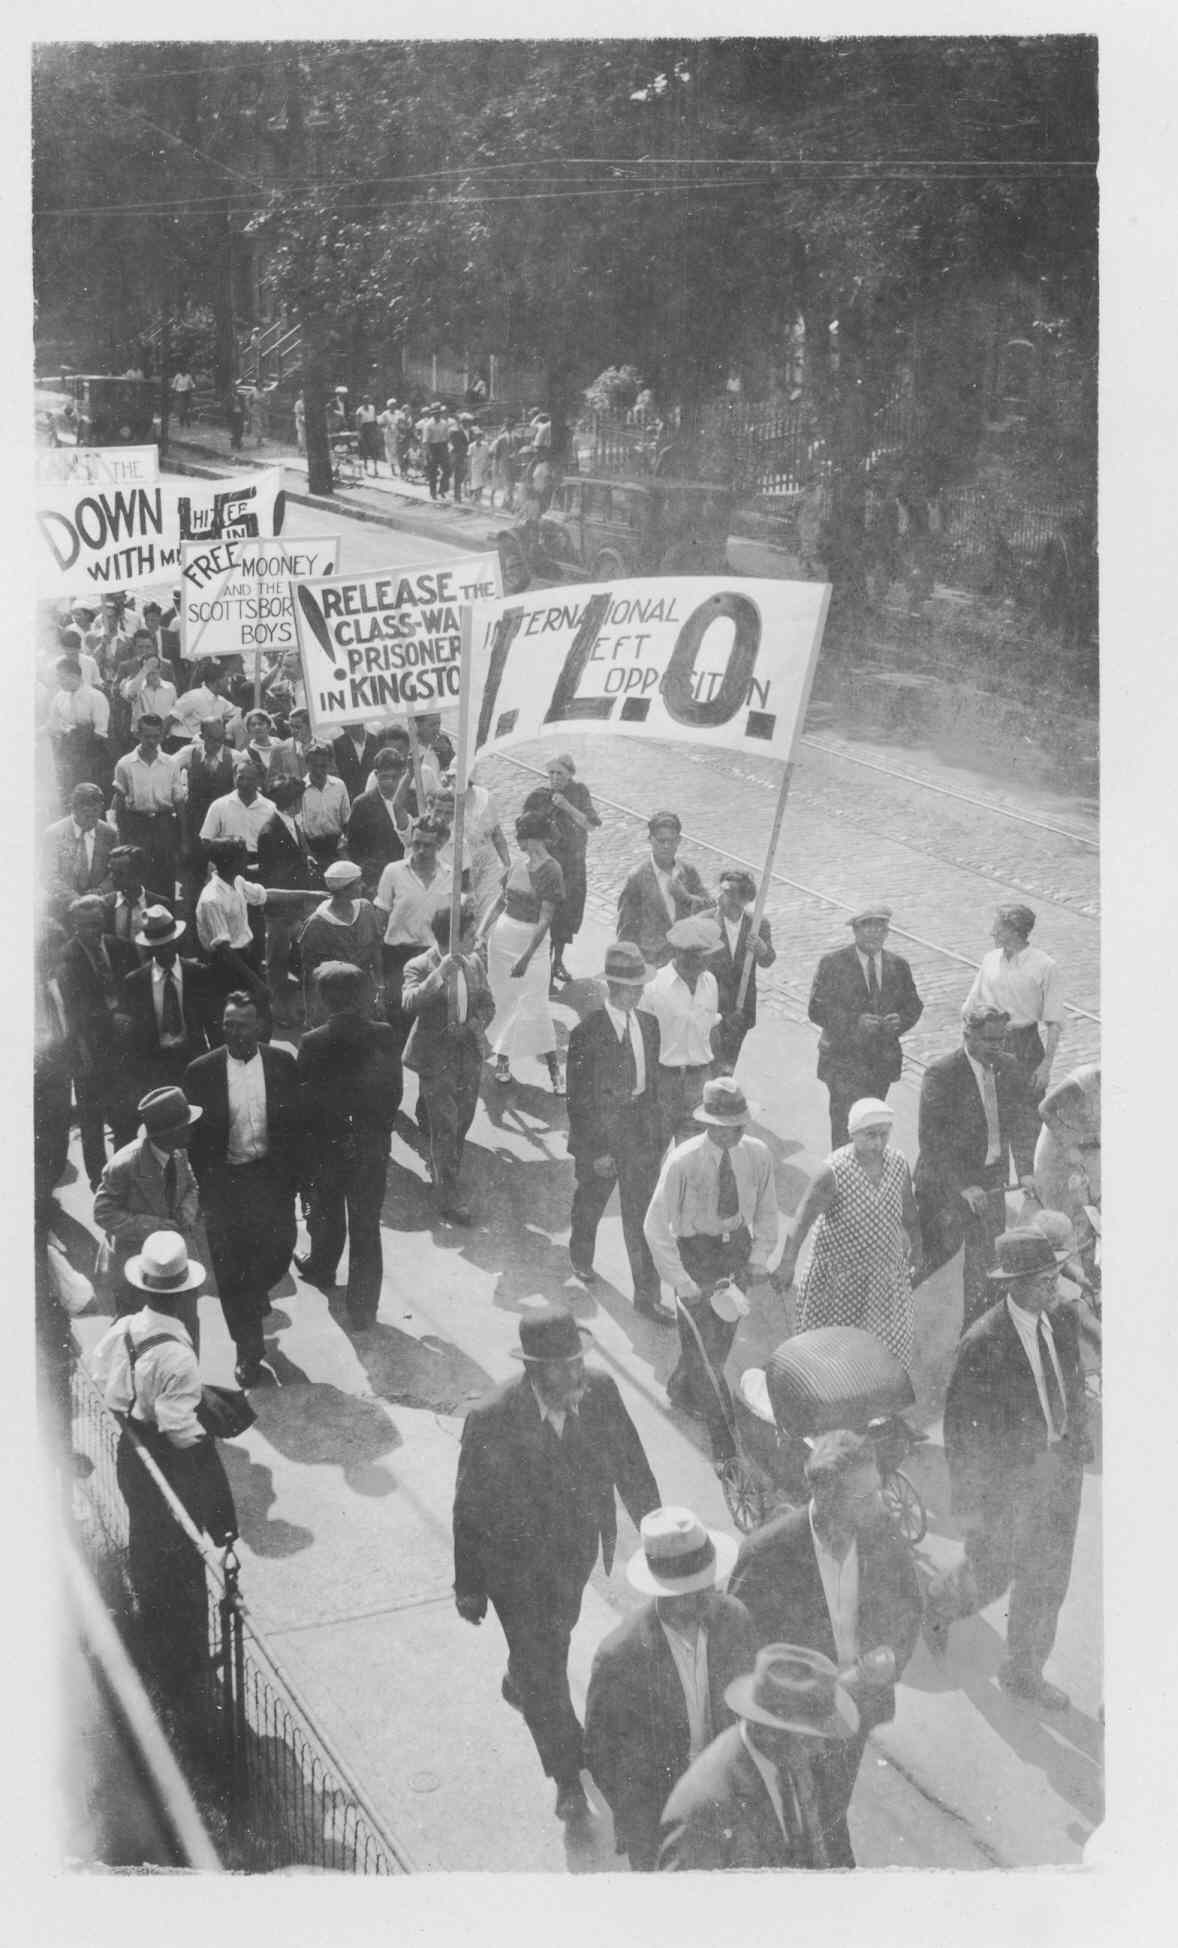 Overhead photograph of the International Left Opposition demonstration which took place on 11 July 1933. Over 15,000 people (mostly Jewish) walked off the job to protest Nazism, fascism, and other human rights issues. It was reported in the Globe and Mail as the largest protest of its kind in Canada since the 1919 Winnipeg strike.   OJA, fonds 32, item 6.